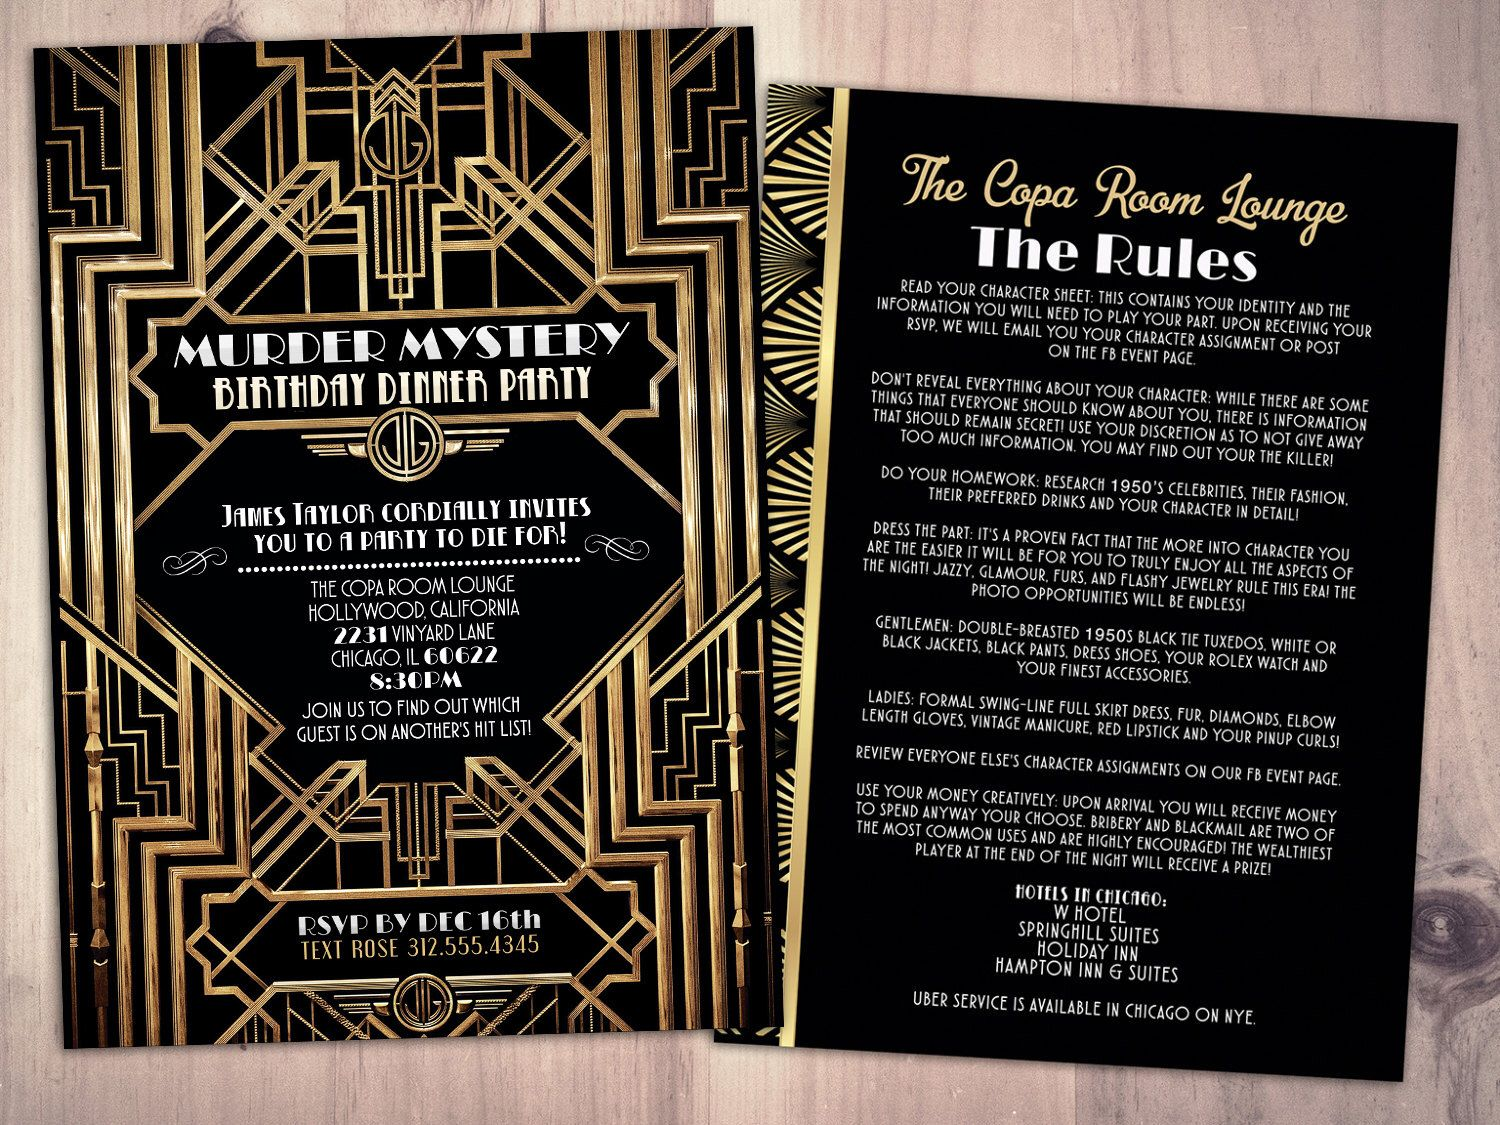 Murder Mystery Dinner Party Invitation, Vintage Party Invitation, Printable  Birthday Invite, Great Gatsby  Printable Dinner Invitations